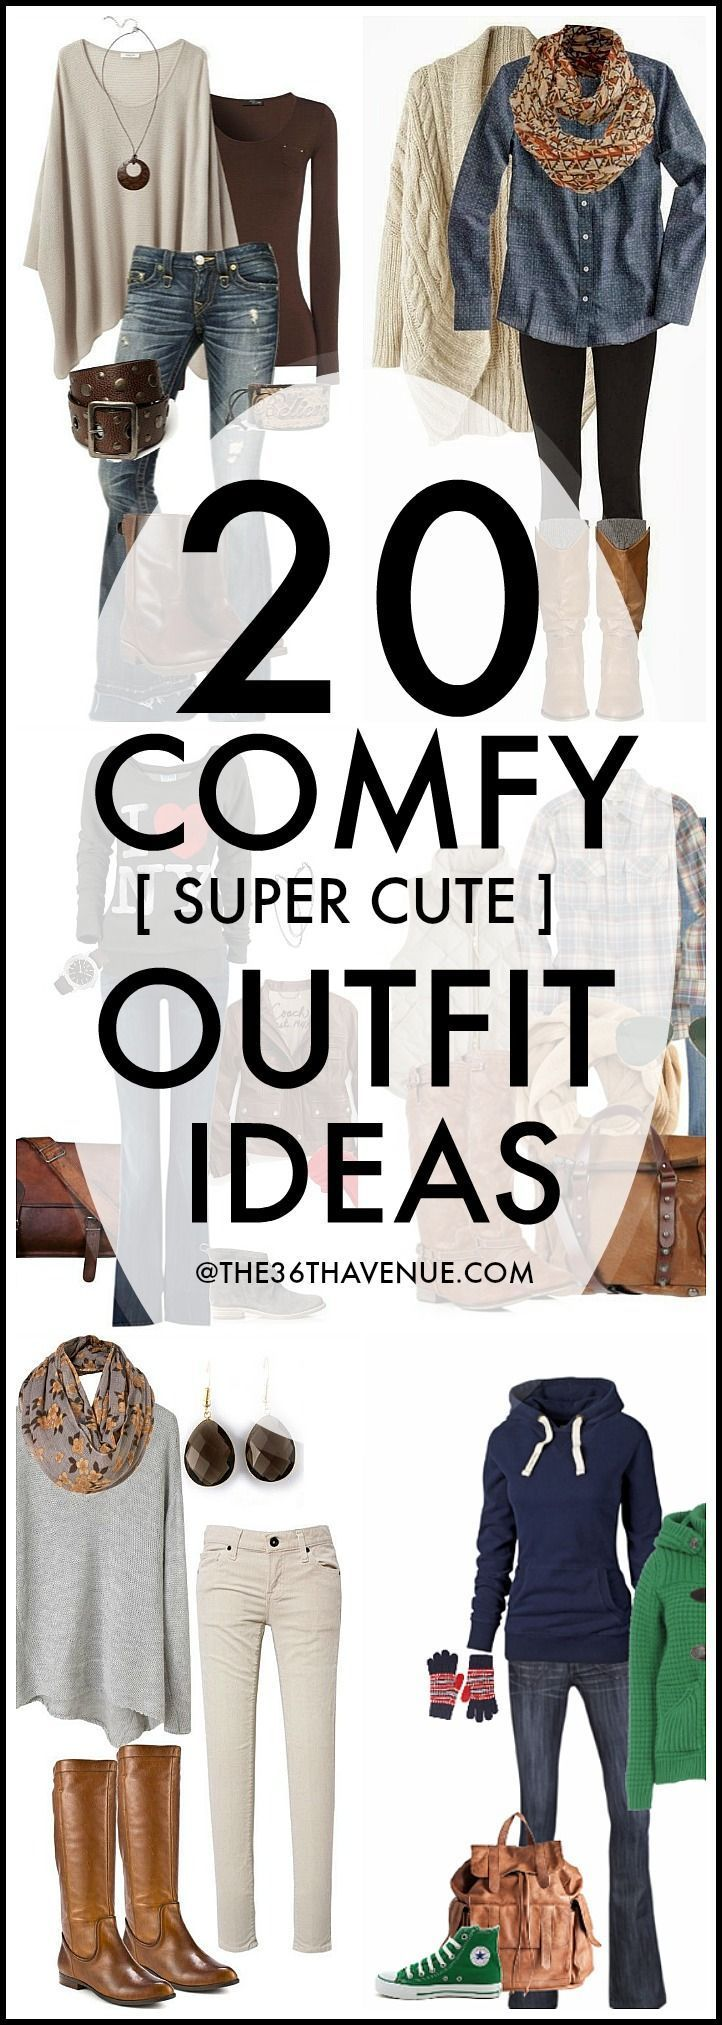 20 comfy and cute outfit ideas